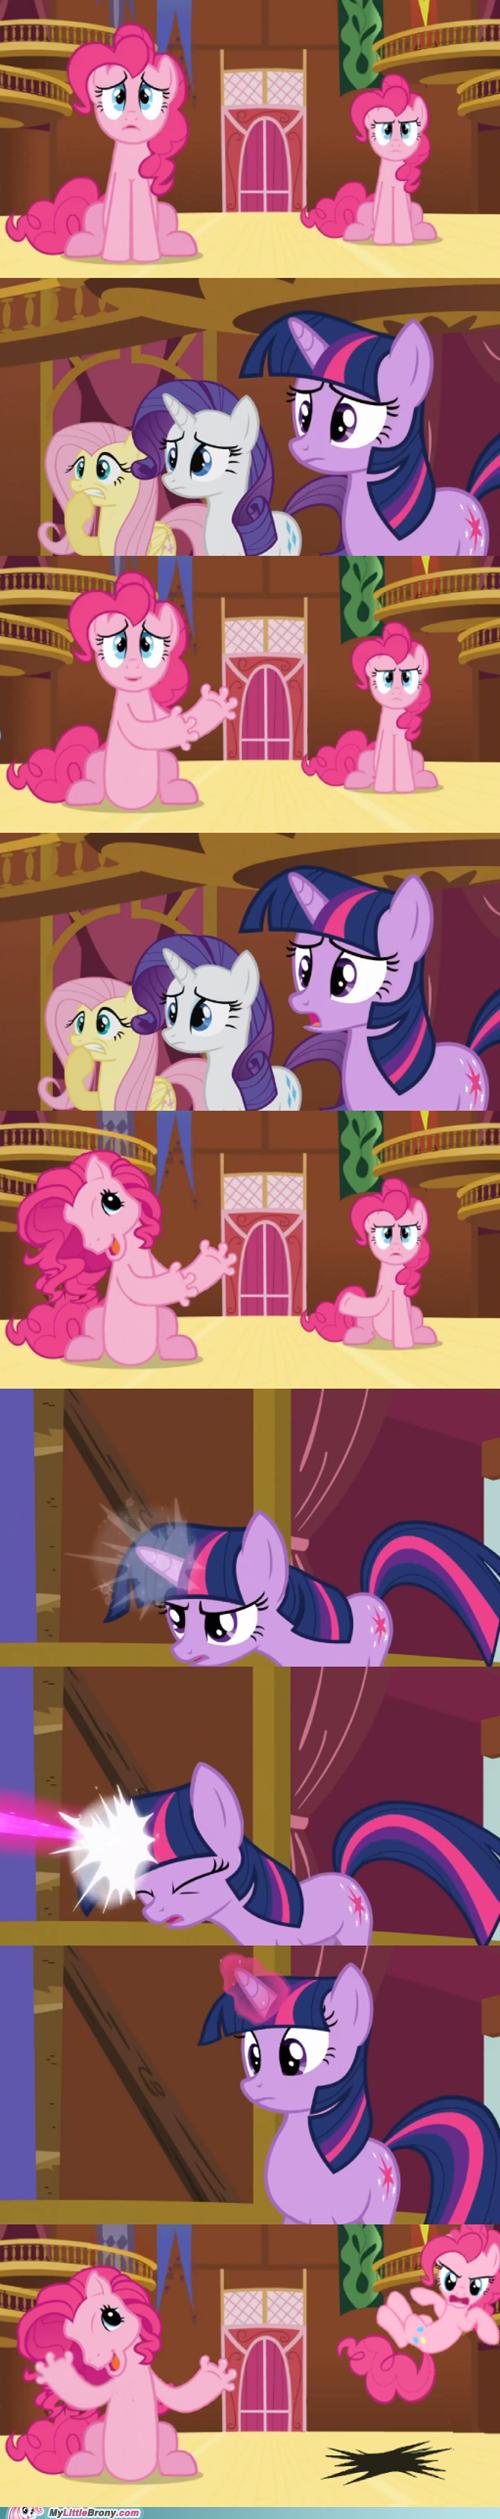 bolt of stone,comics,pinkie pie,comic,imposter